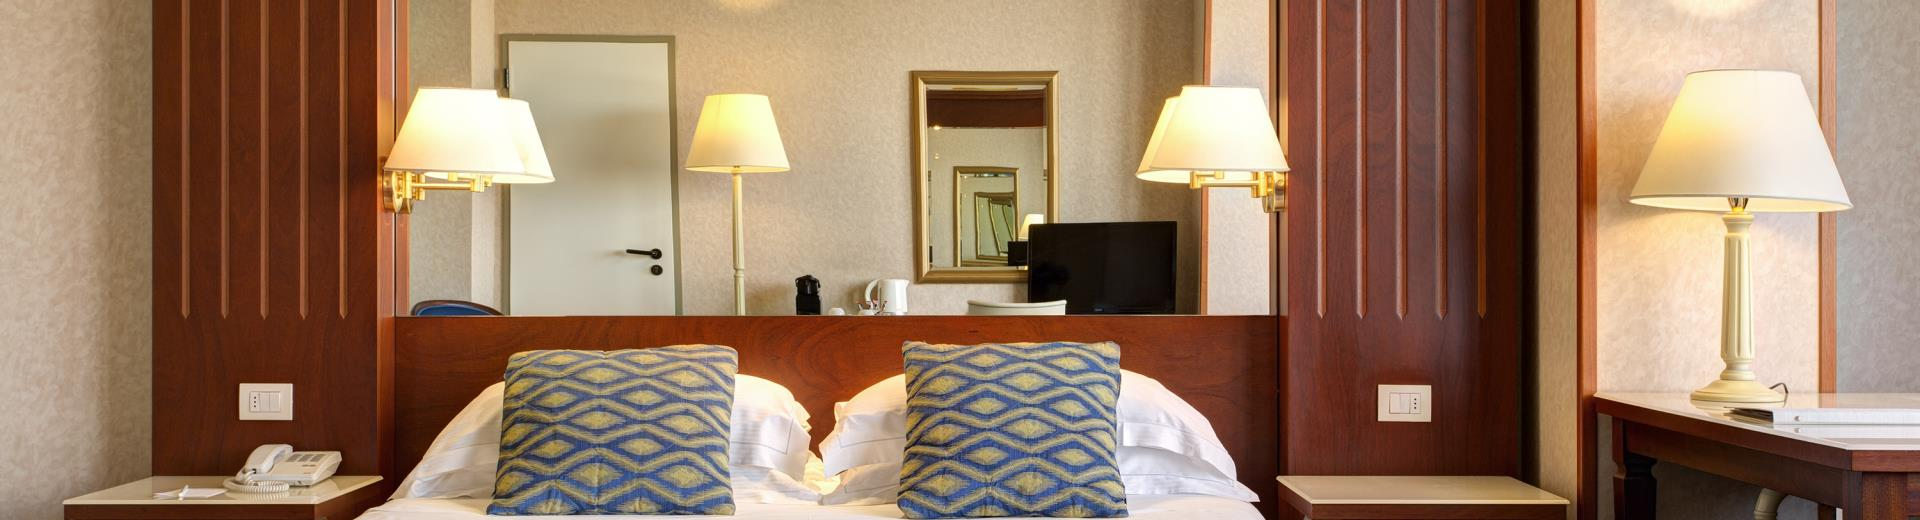 Executive Room - CTC Hotel Verona 4 star hotel